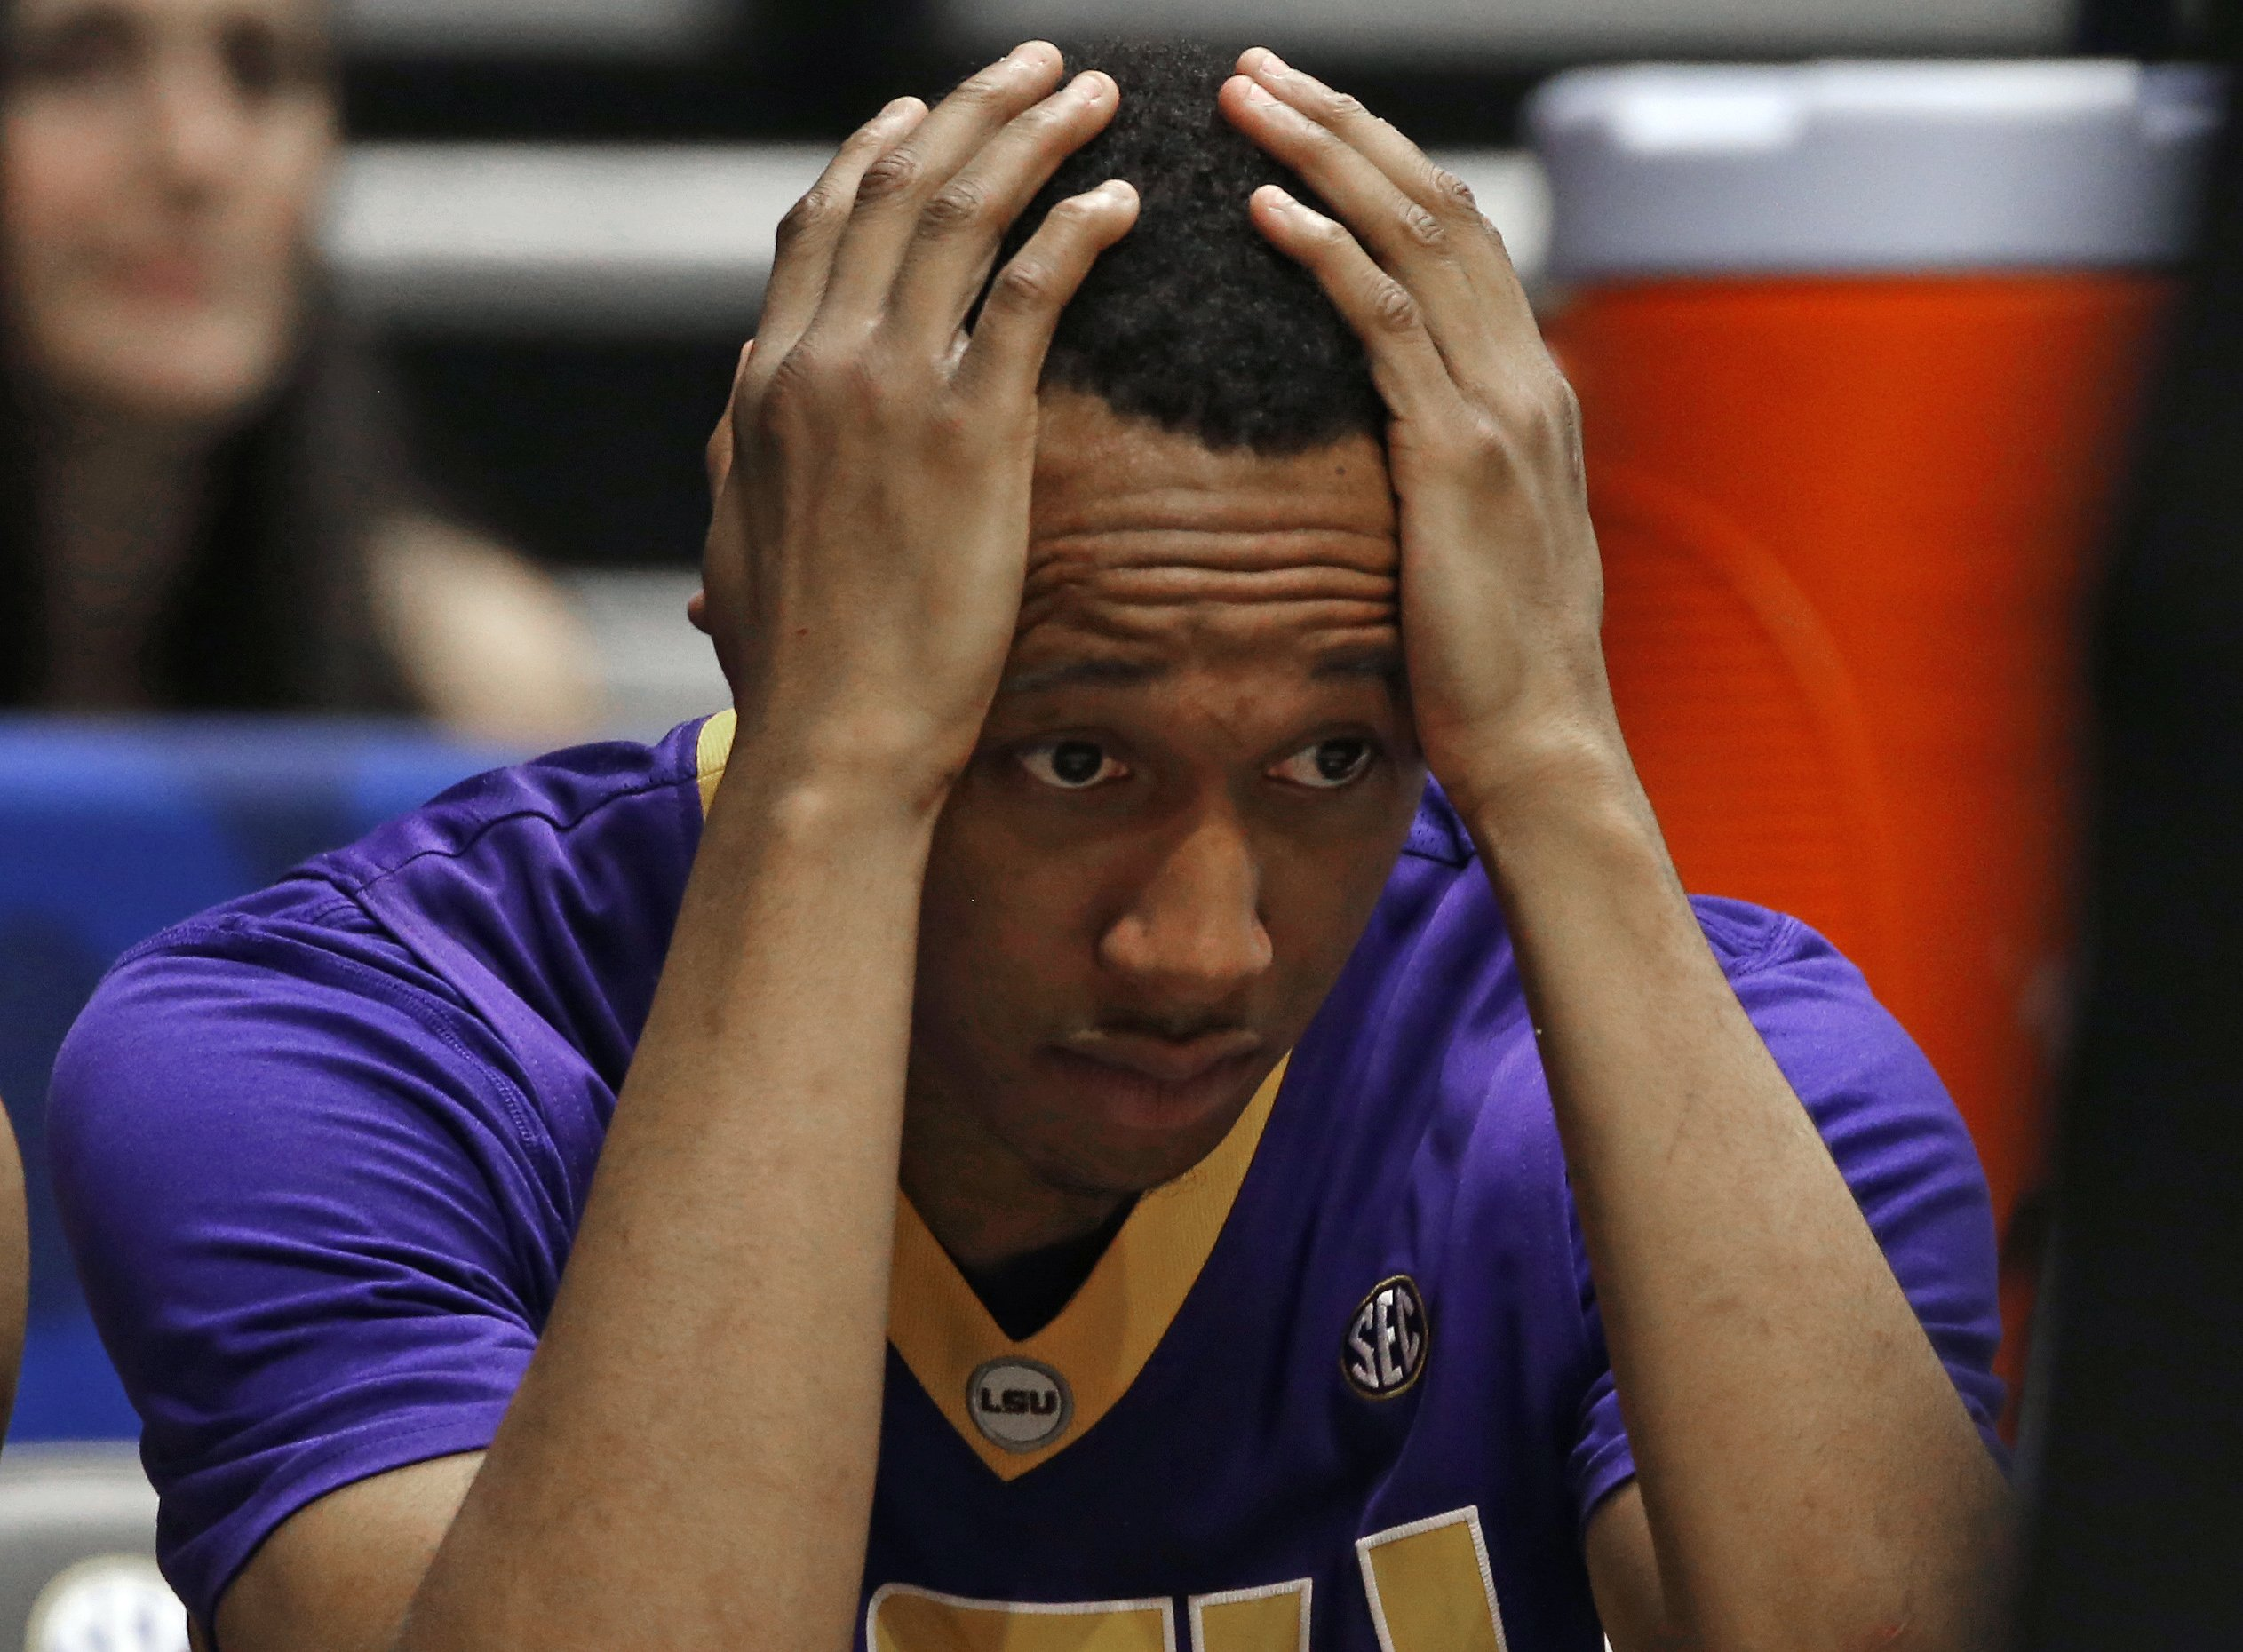 College basketball darkened again by new allegations